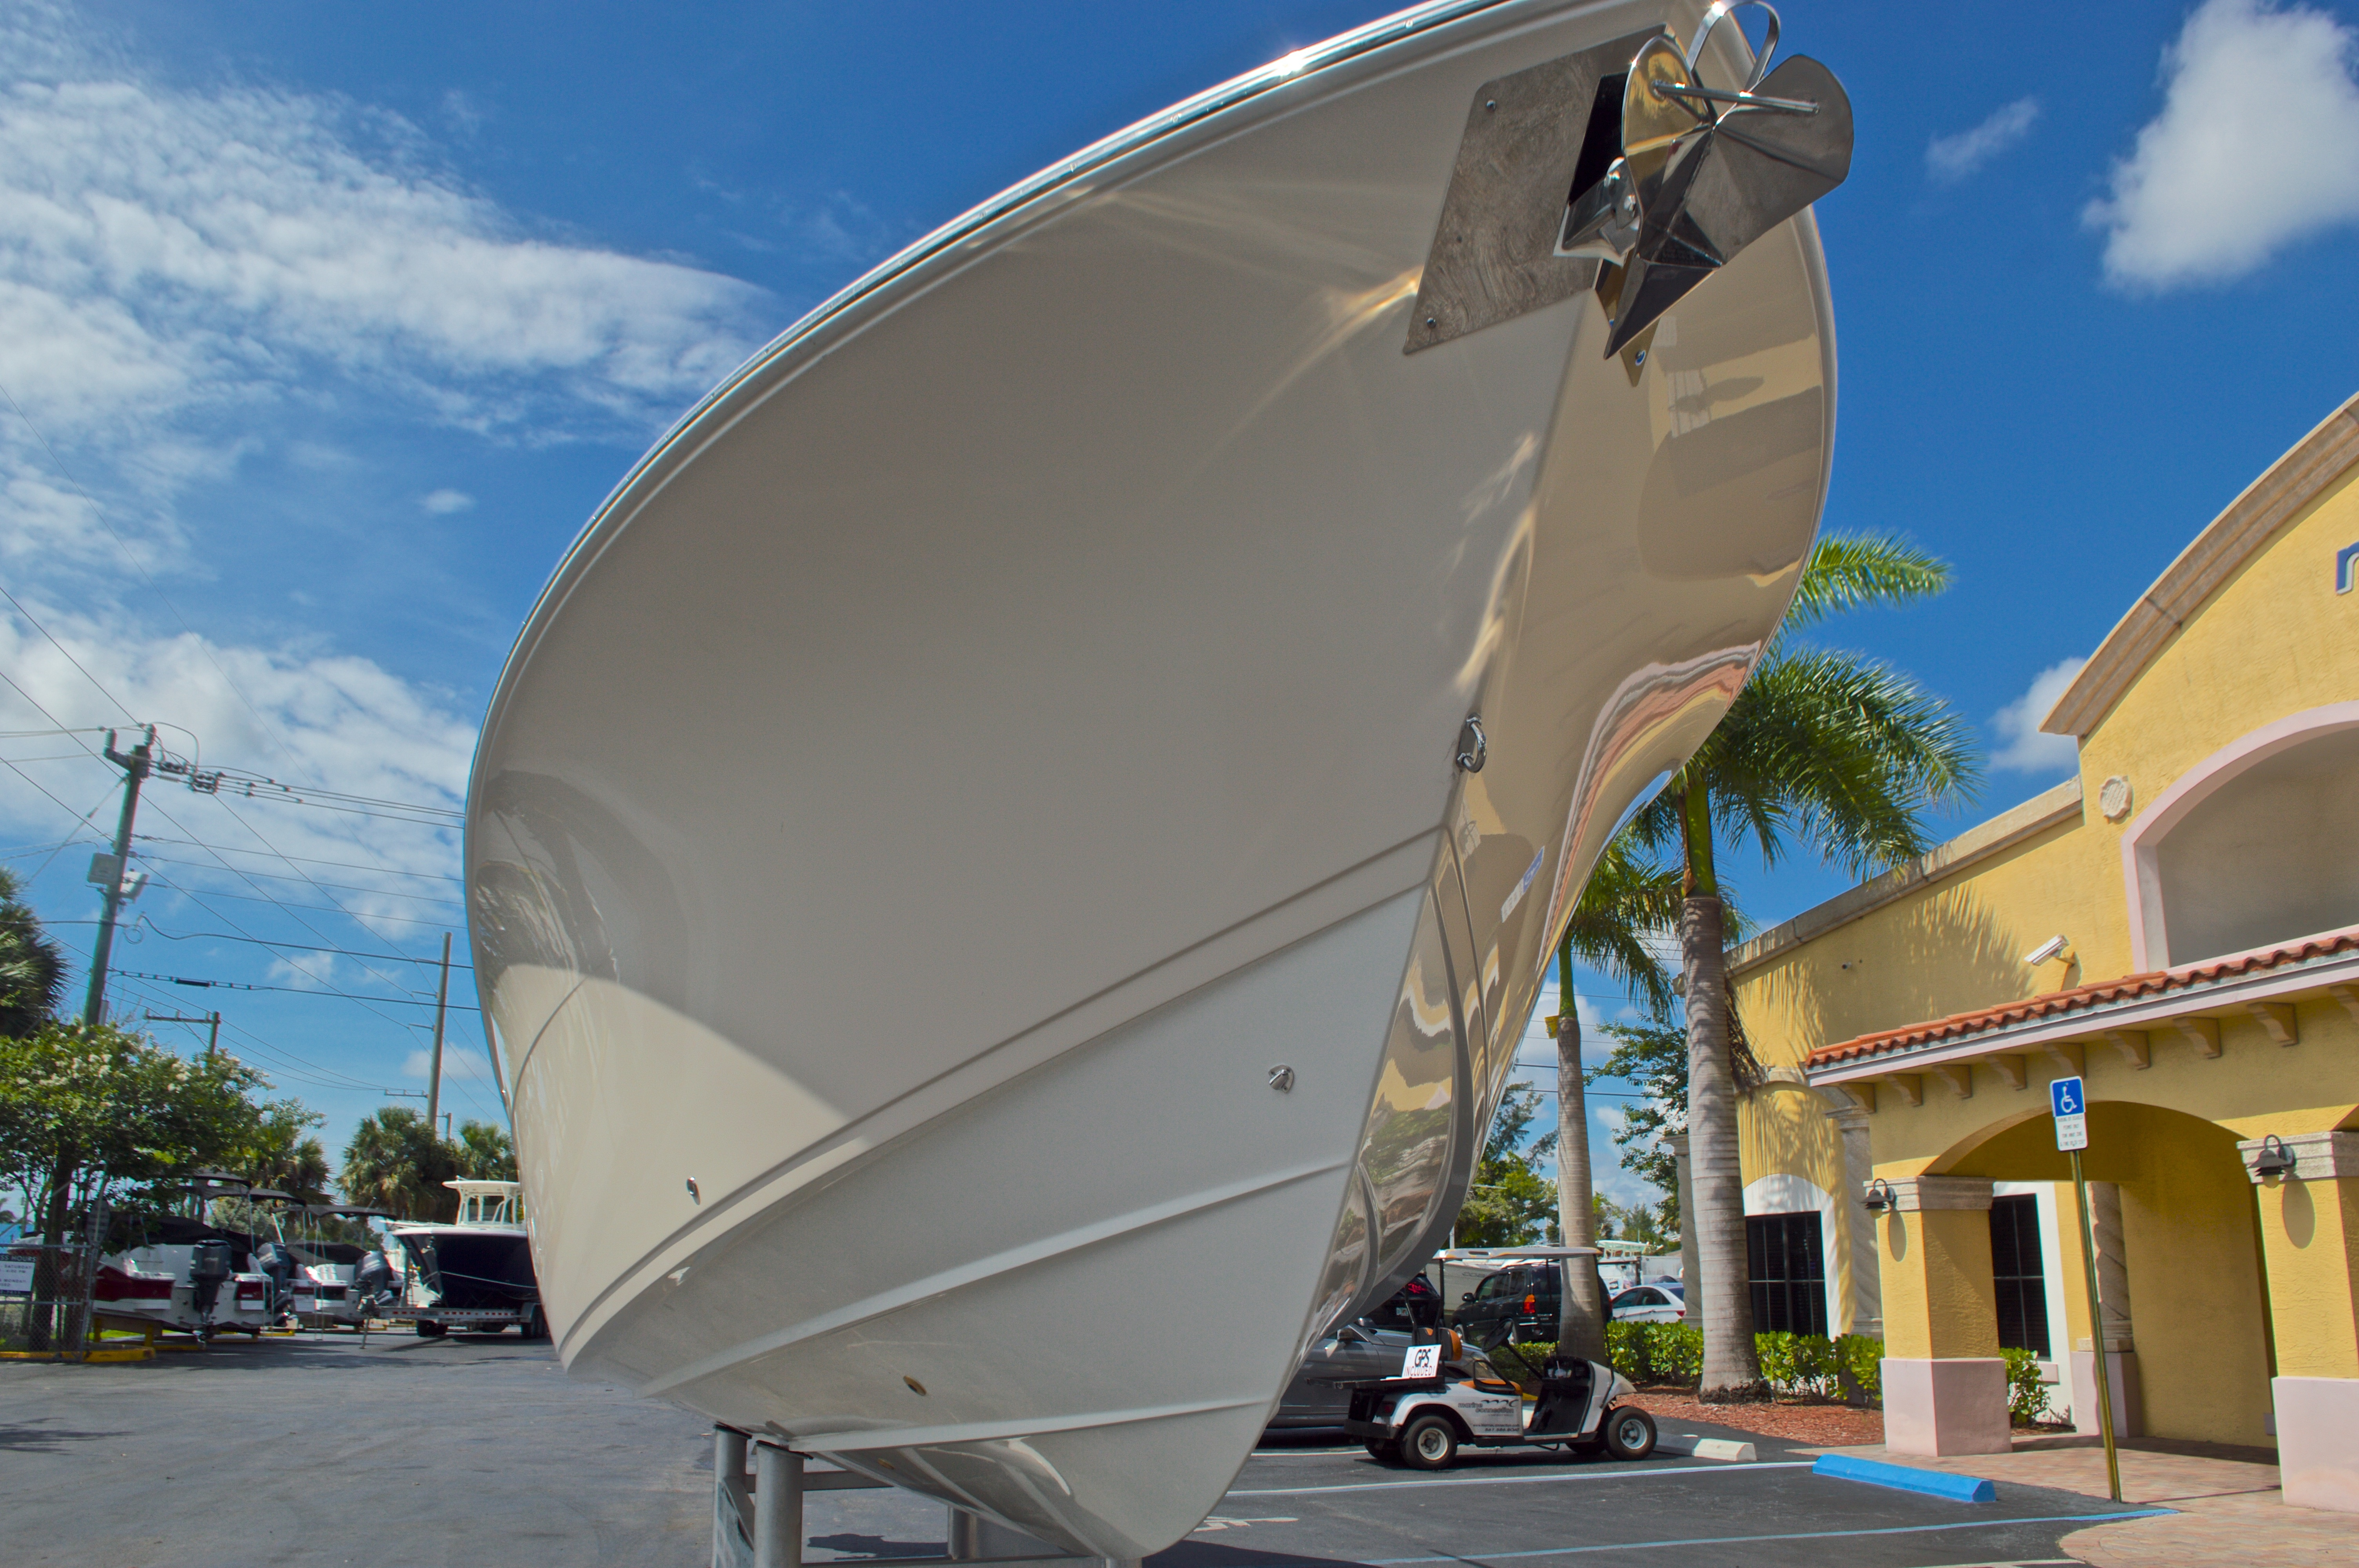 Thumbnail 2 for New 2016 Cobia 296 Center Console boat for sale in West Palm Beach, FL